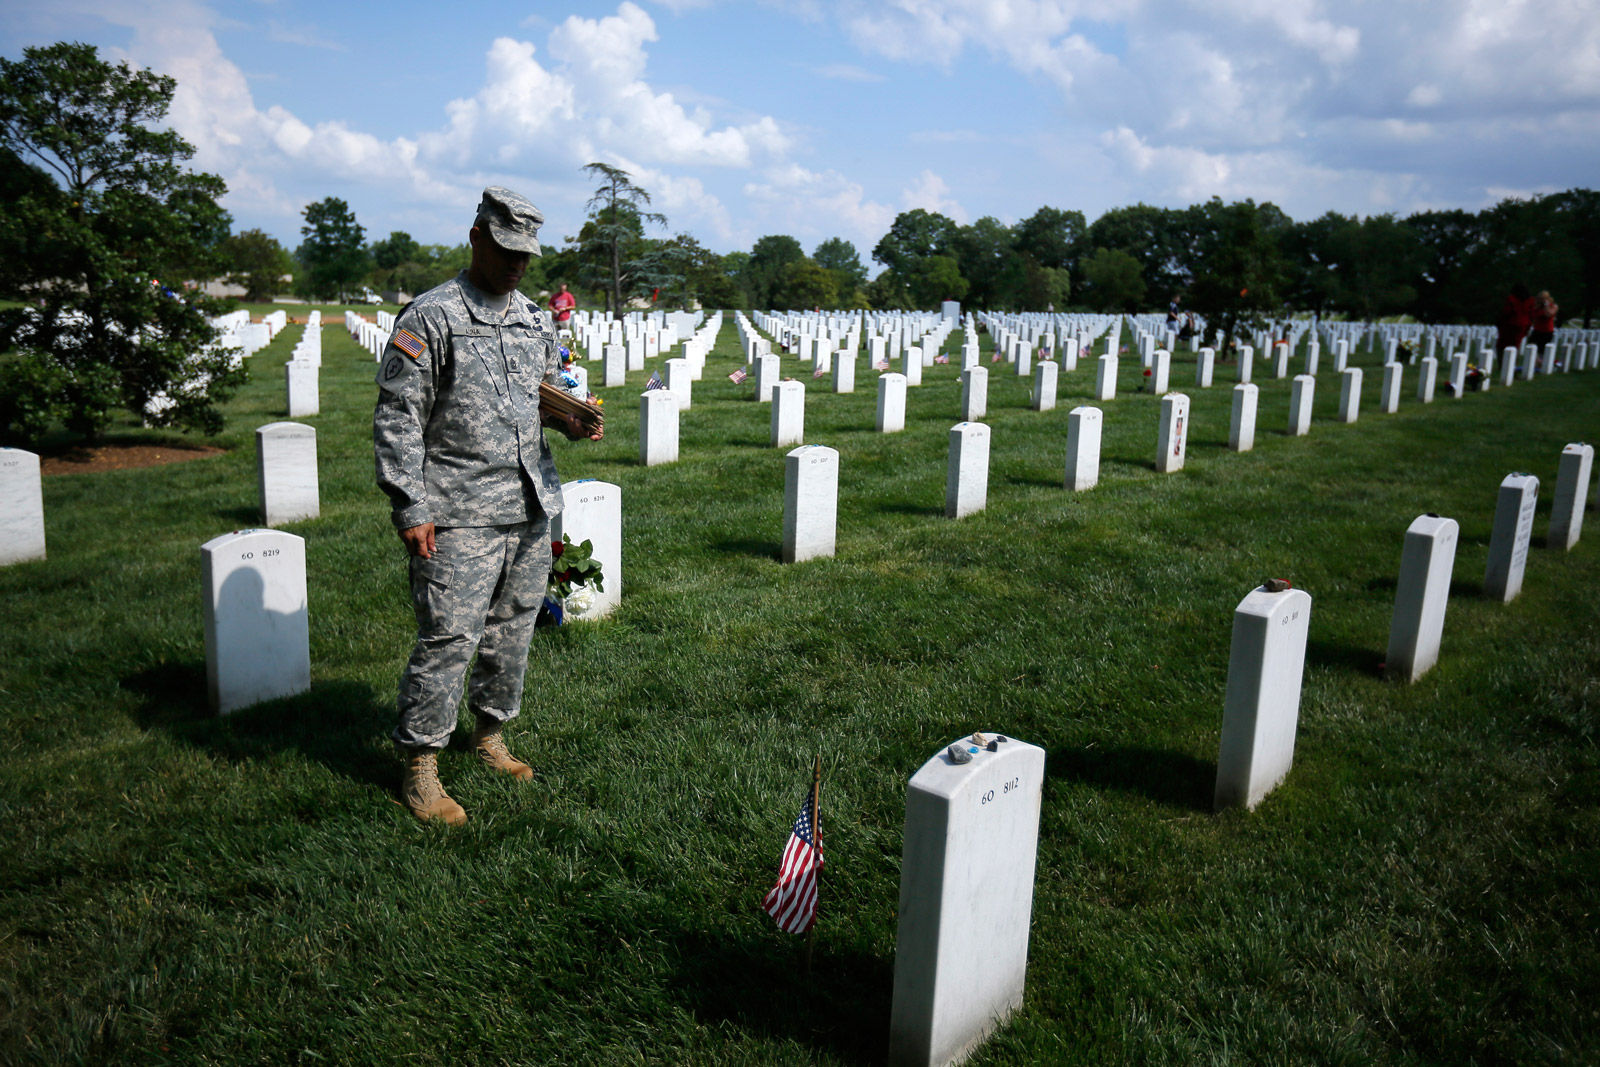 Flags In Ceremony at Arlington National Cemetary on May 24, 2012